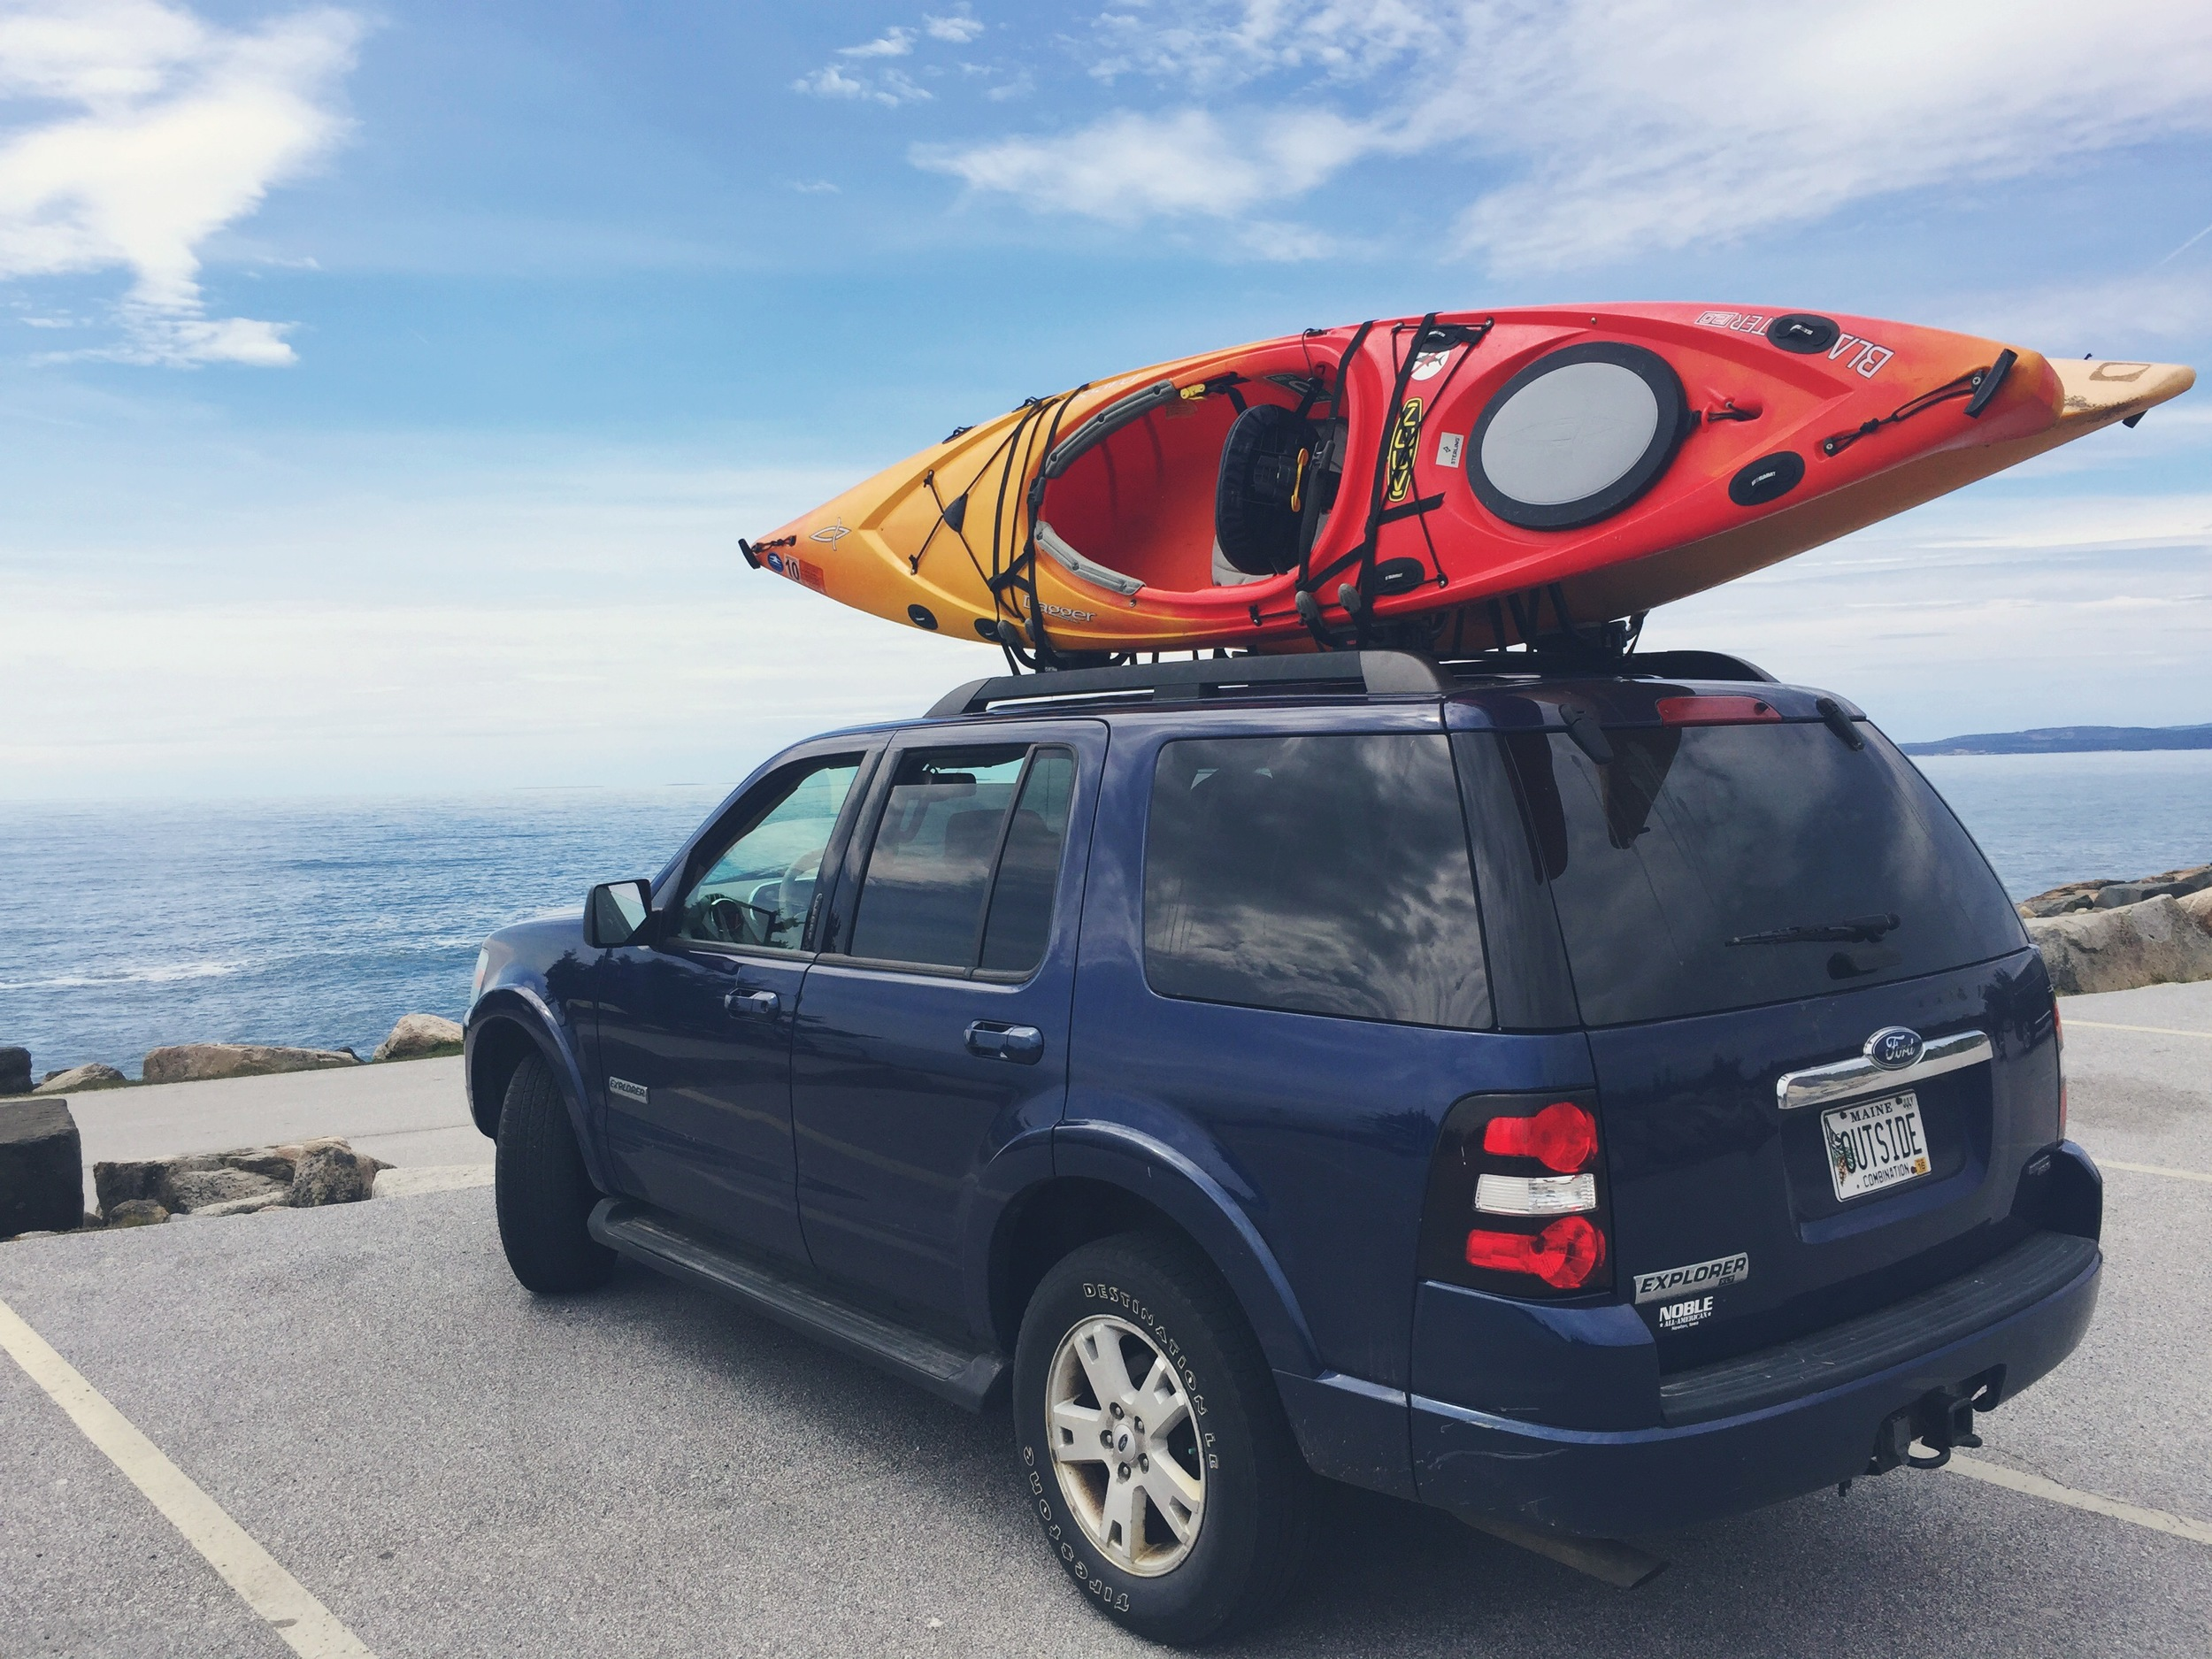 Parked at the tip of Schoodic to explore the rocky outcroppings